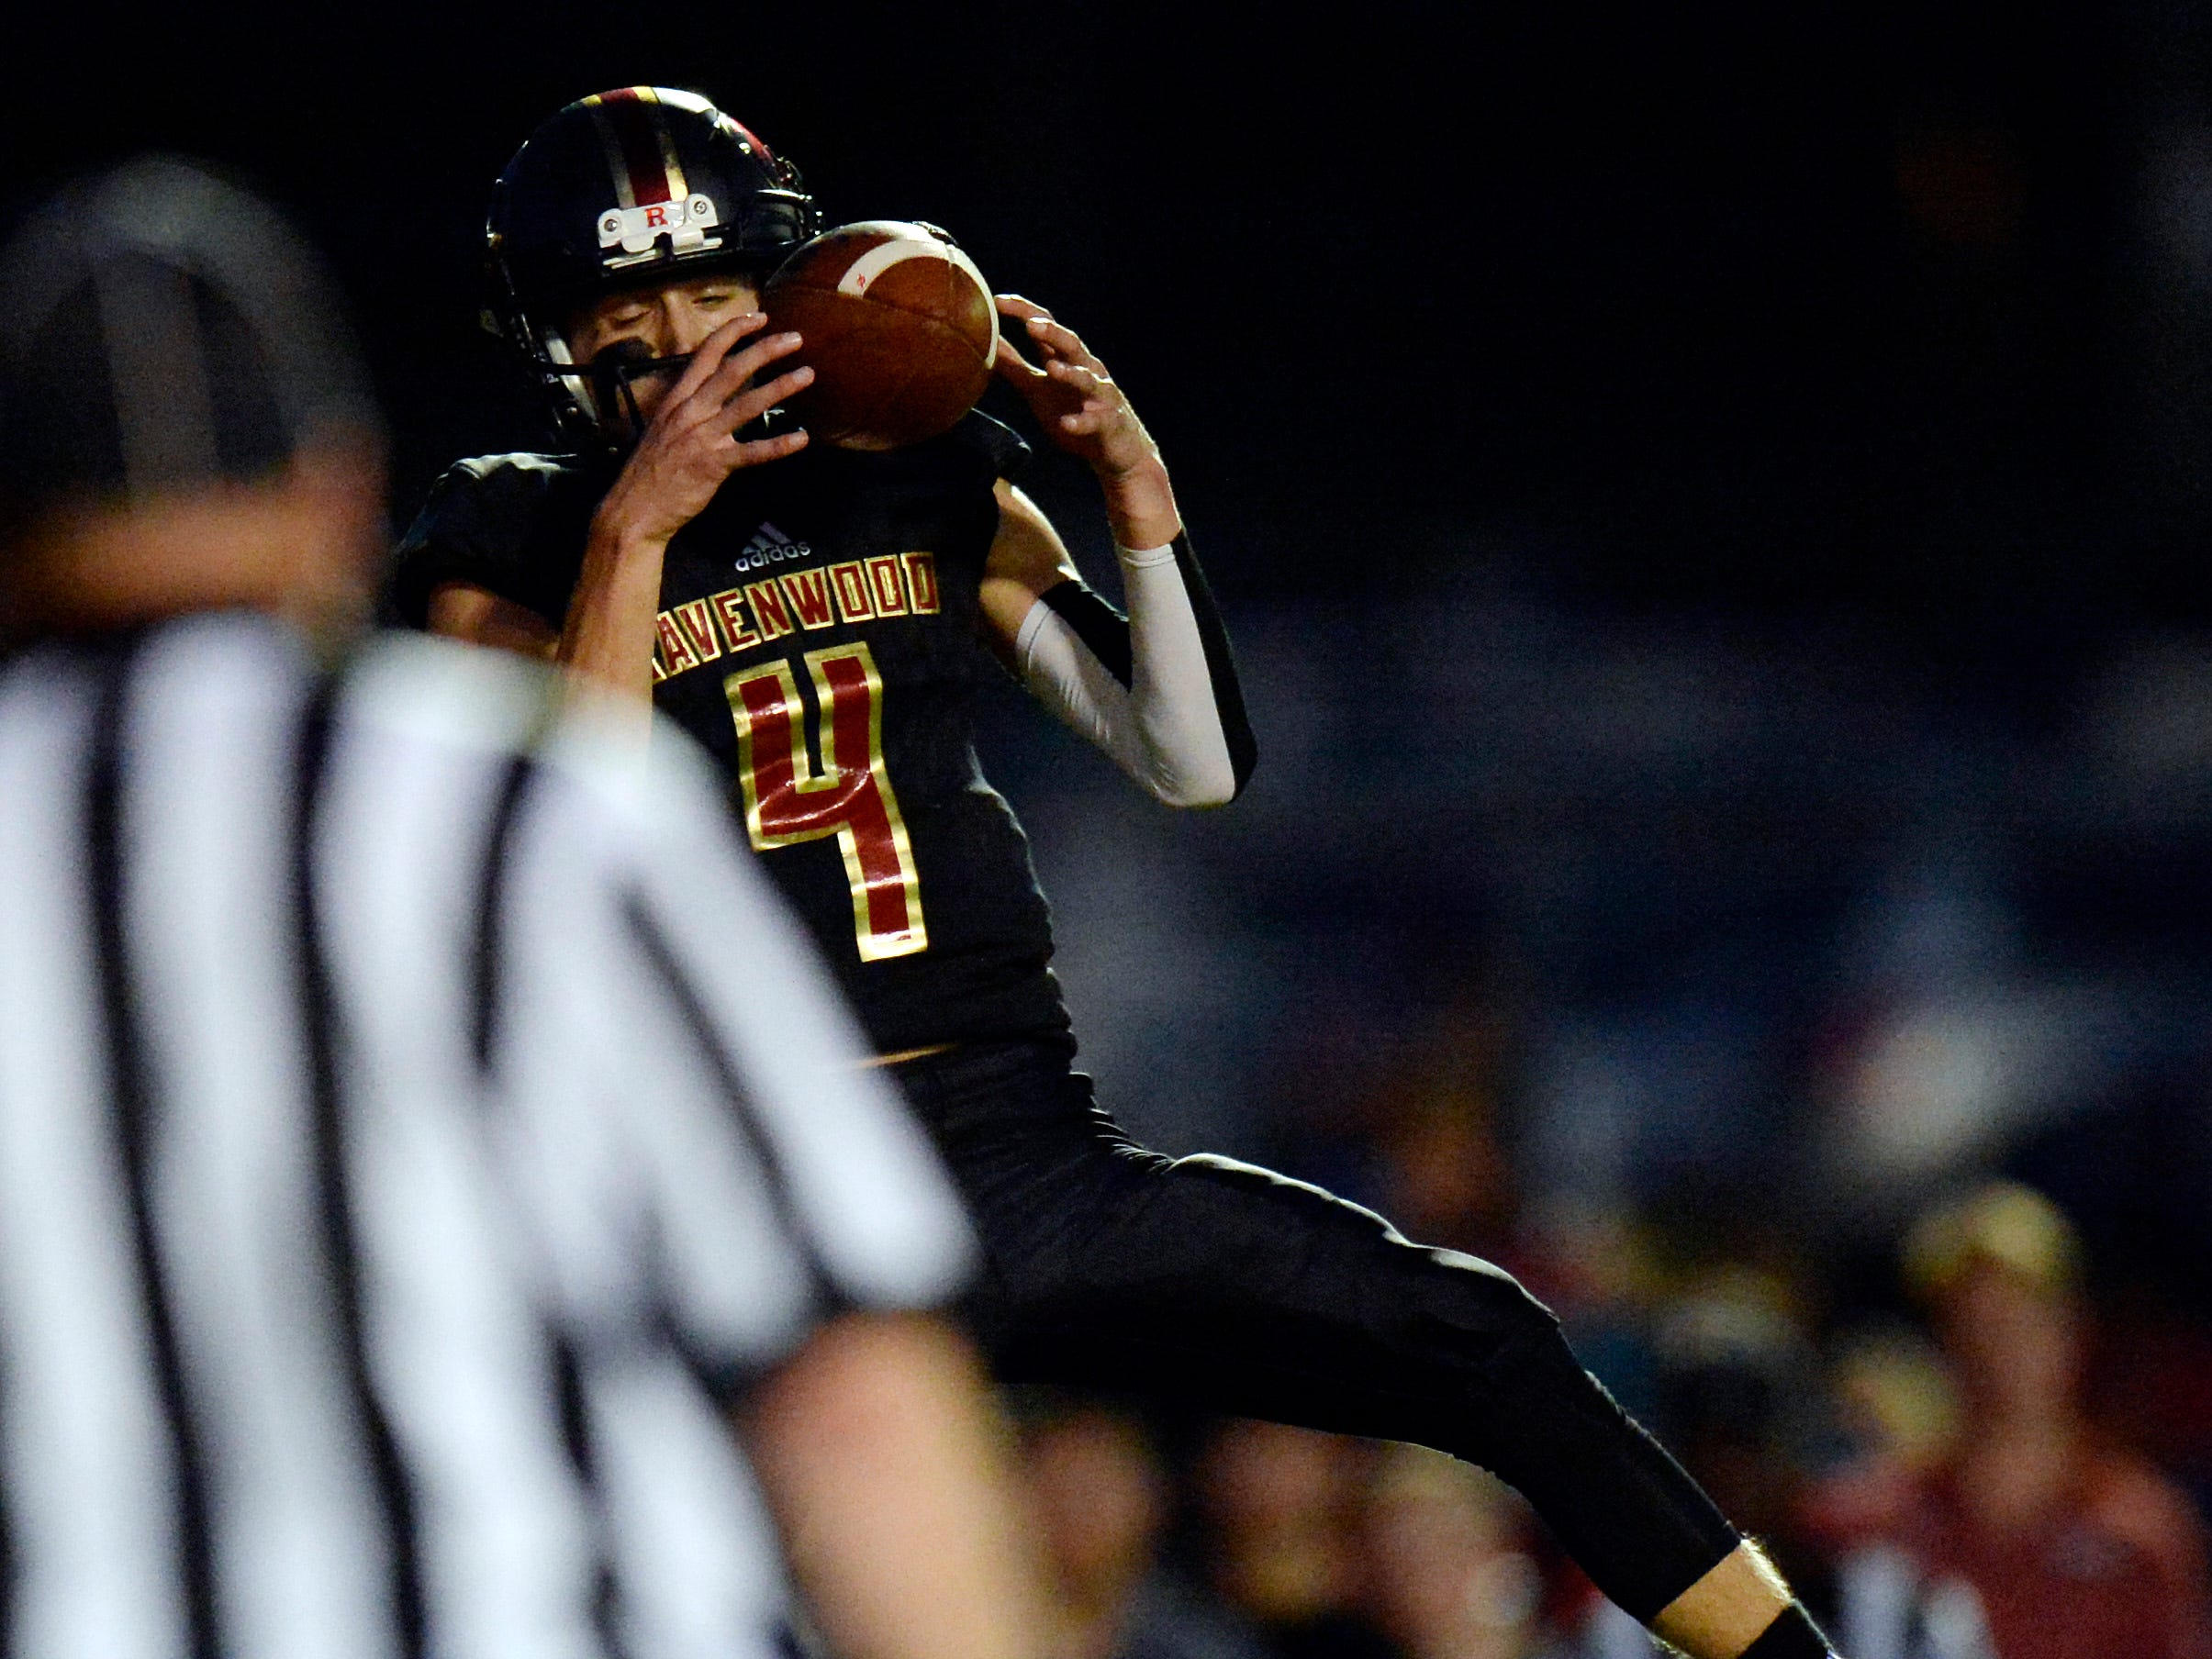 Ravenwood quarterback Brian Garcia (4) catches the ball for a touchdown against Brentwood during the first half of an high school football game Friday, September 14, 2018, in Brentwood, Tenn.